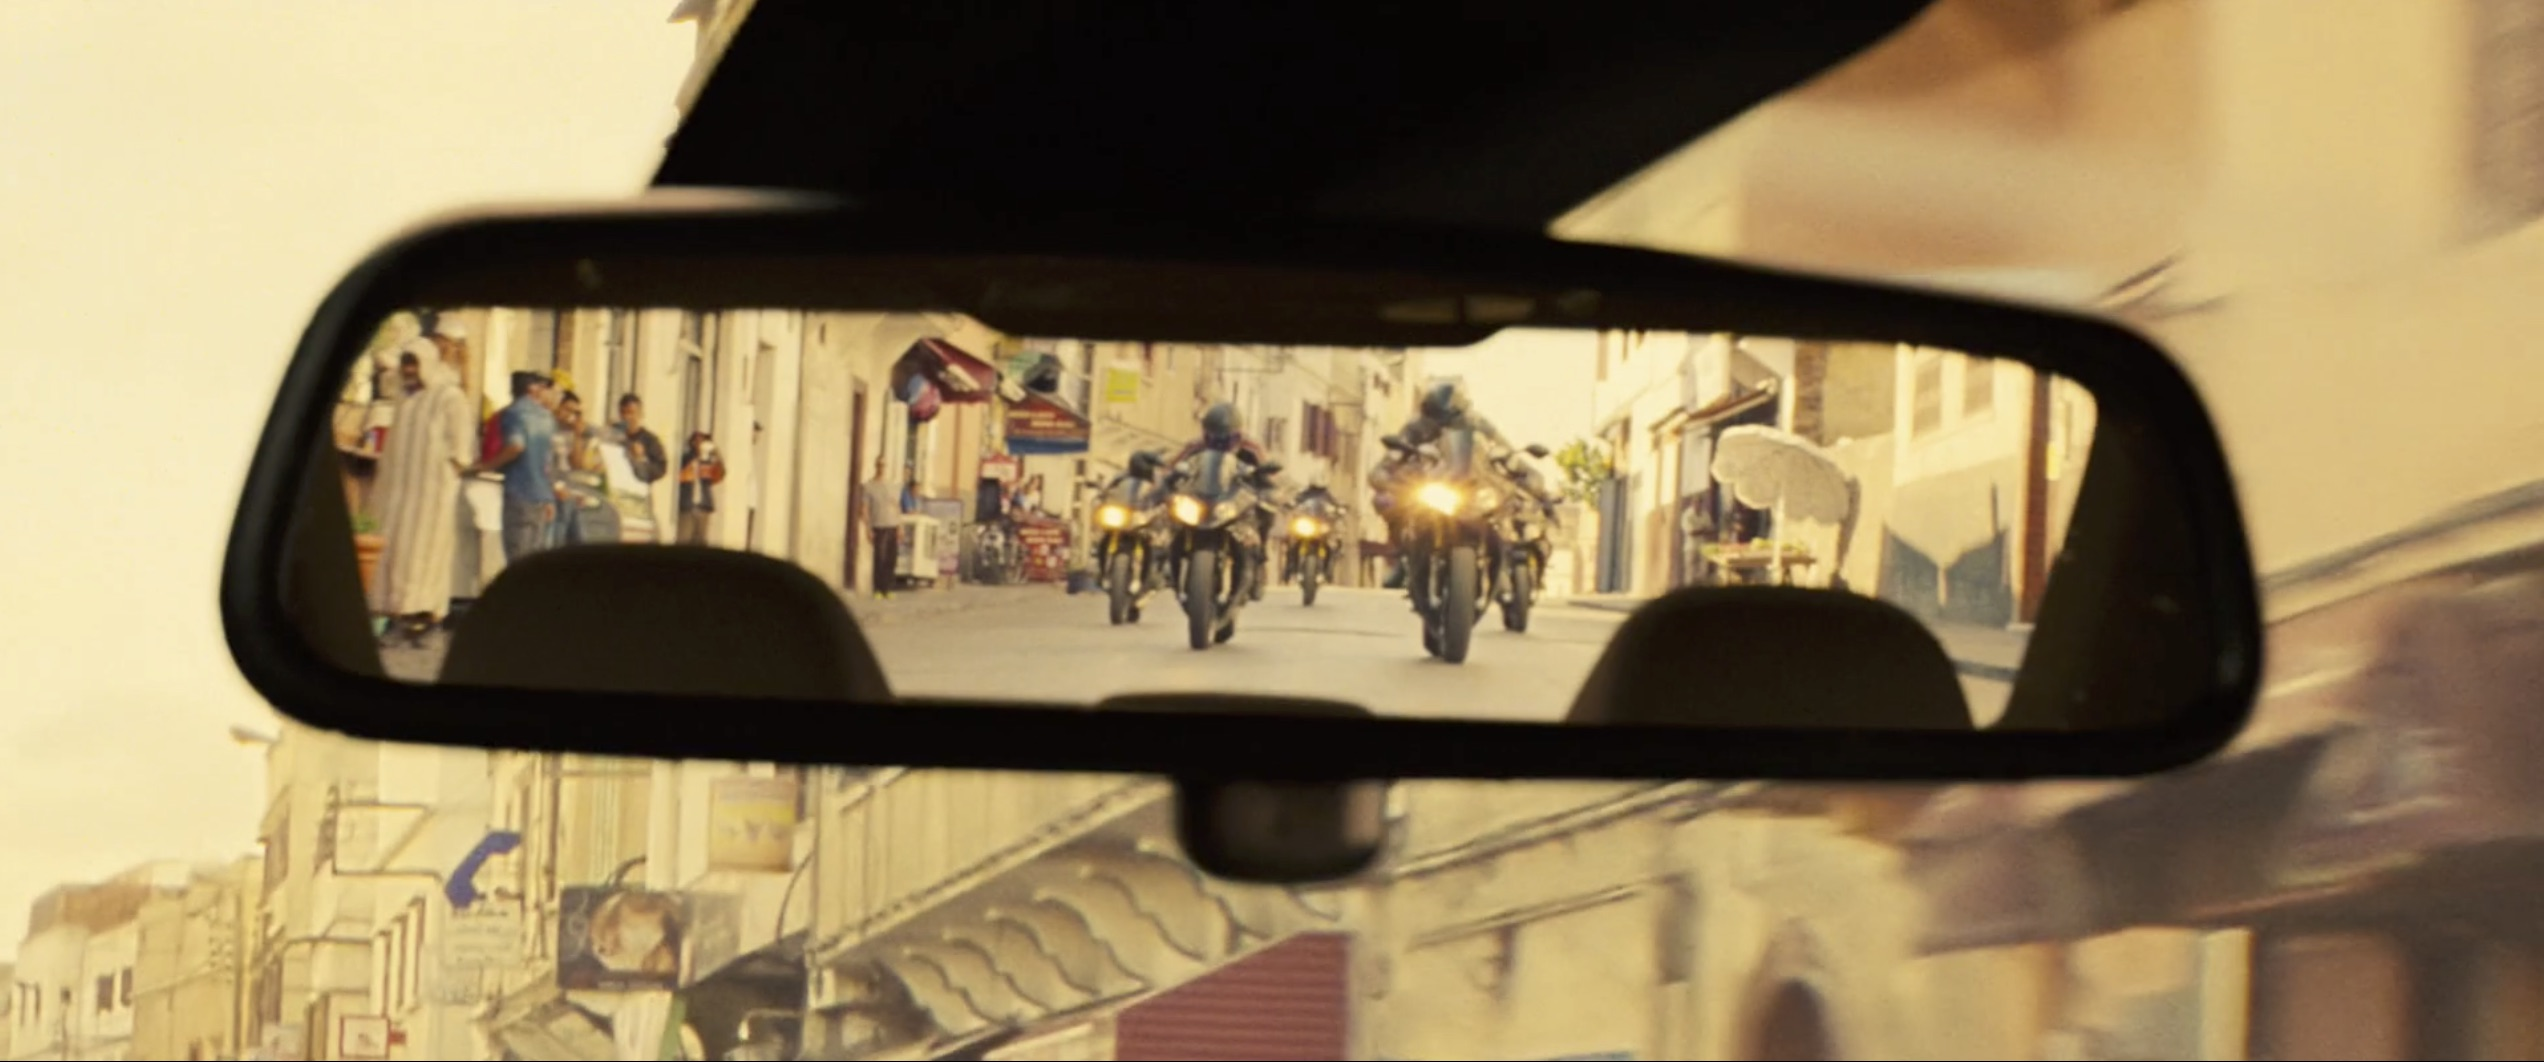 Mission Impossible: Rogue Nation motorcycle rearview mirror